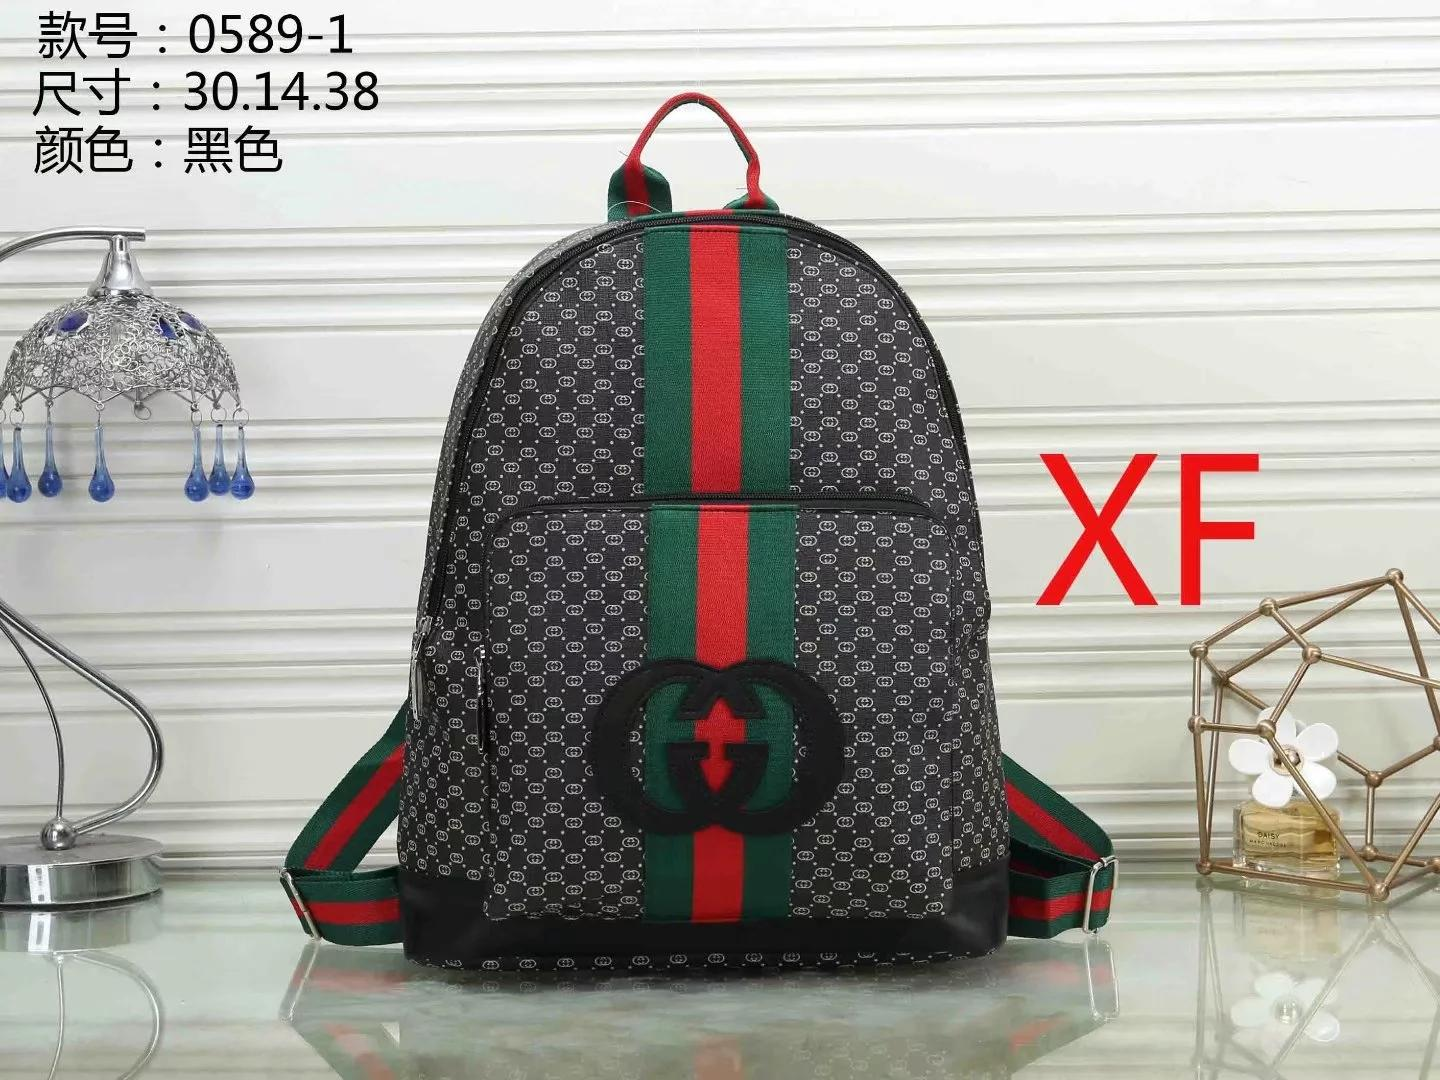 New Gucci Four Piece Brand Letter Backpack Casual Breathable Canvas  Universal Multi Purpose Student Bag Free b096fbe175fa0